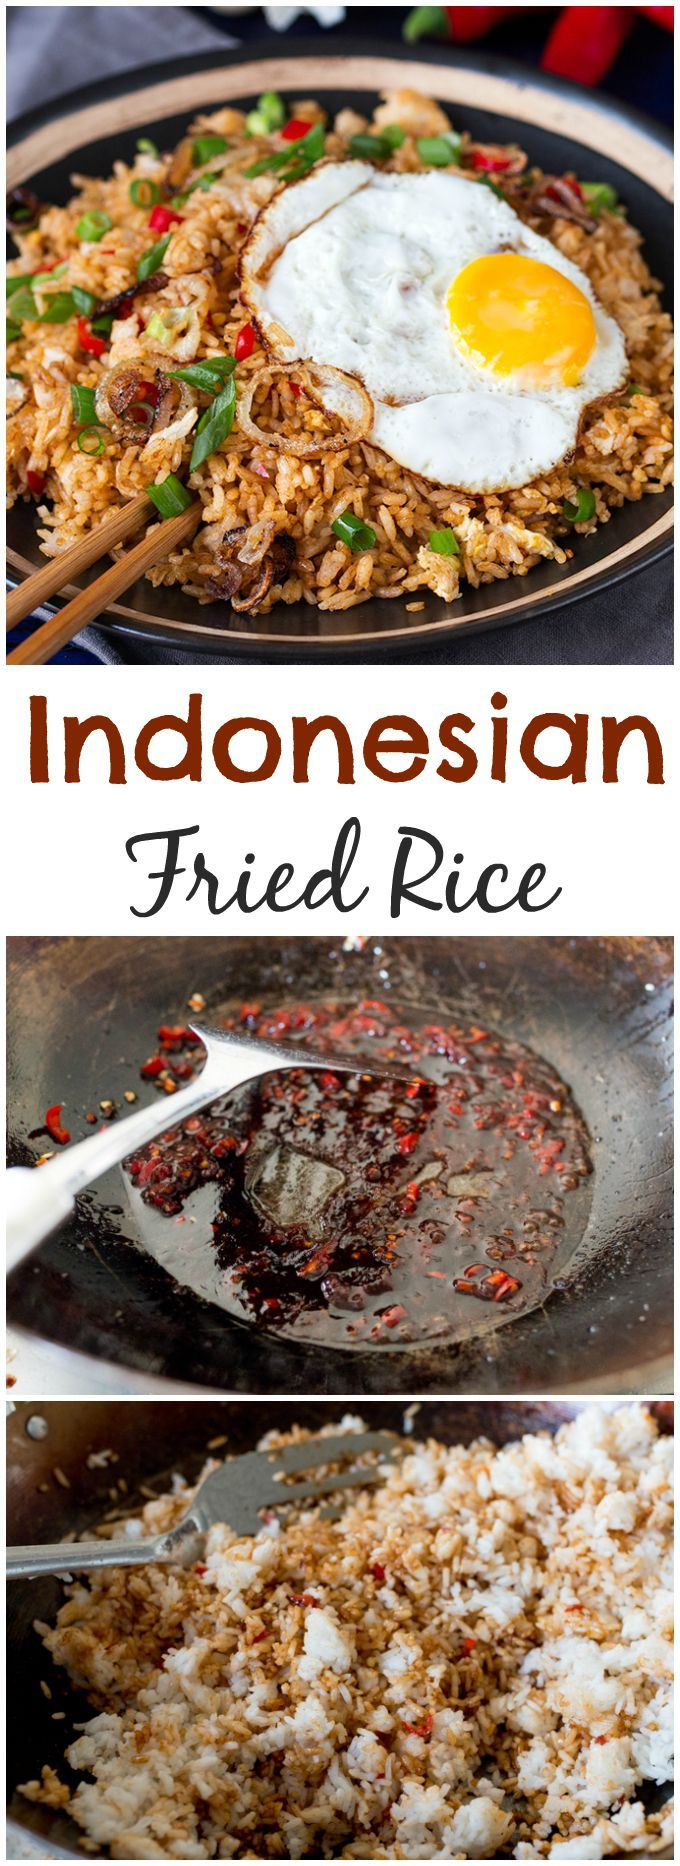 How to make spicy Indonesian fried rice.(Rice Recipes)